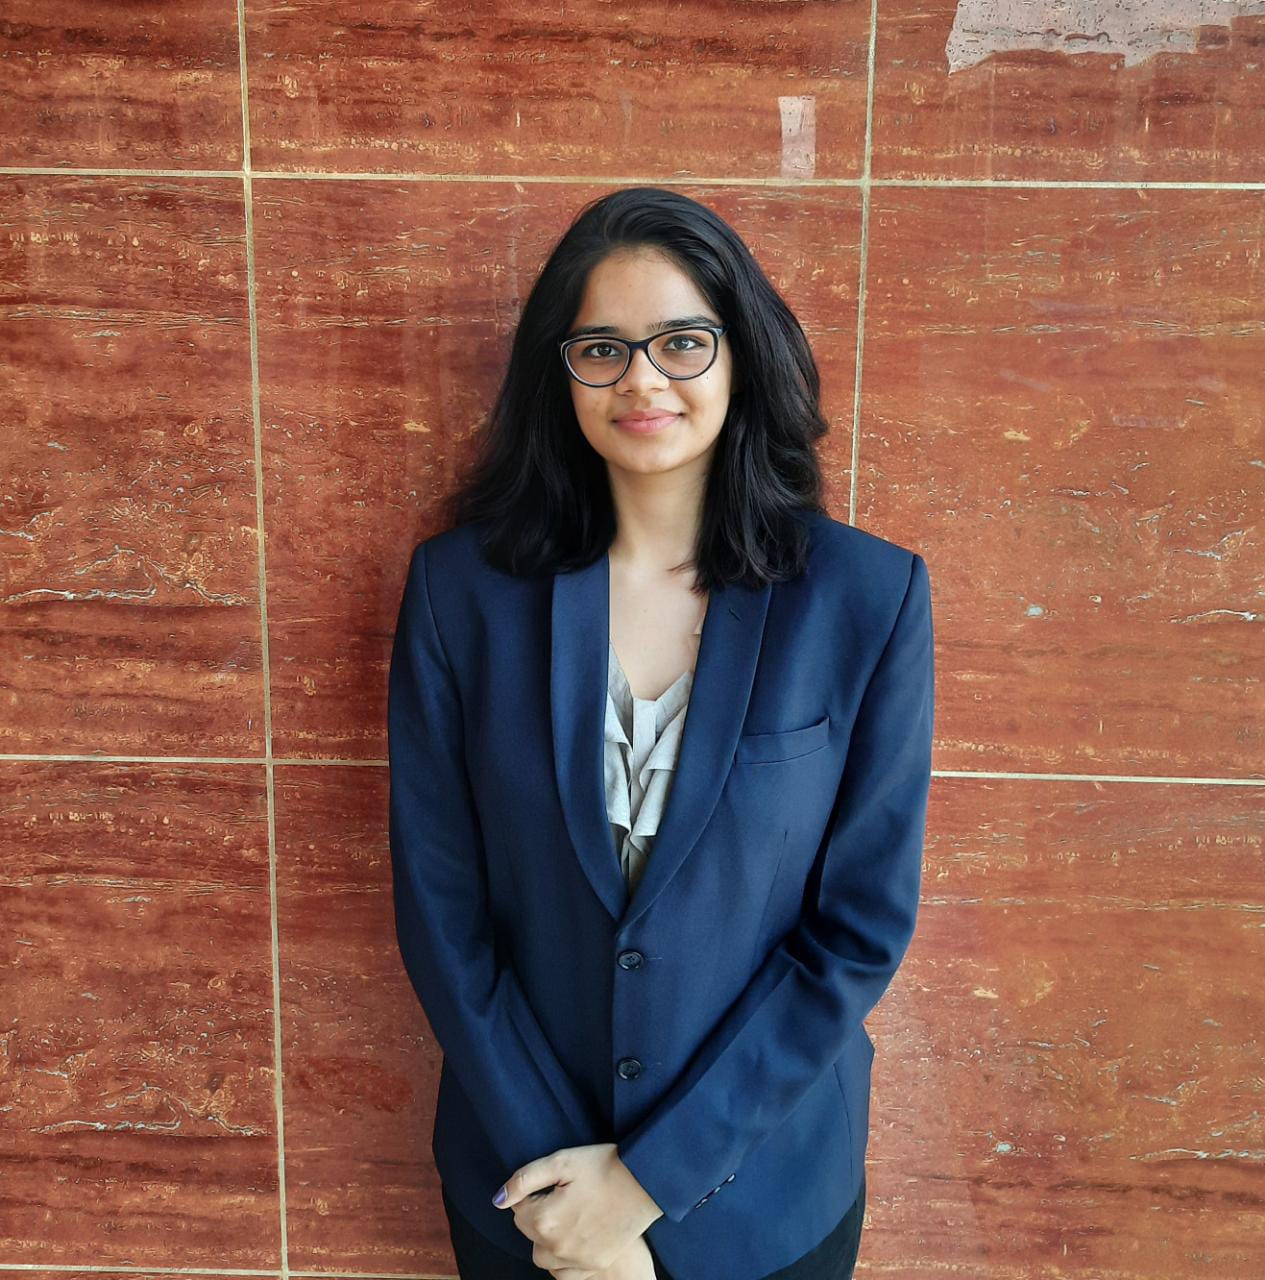 5th year law student from MSU Baroda selected for LAMP FELLOWSHIP for 2021-2022